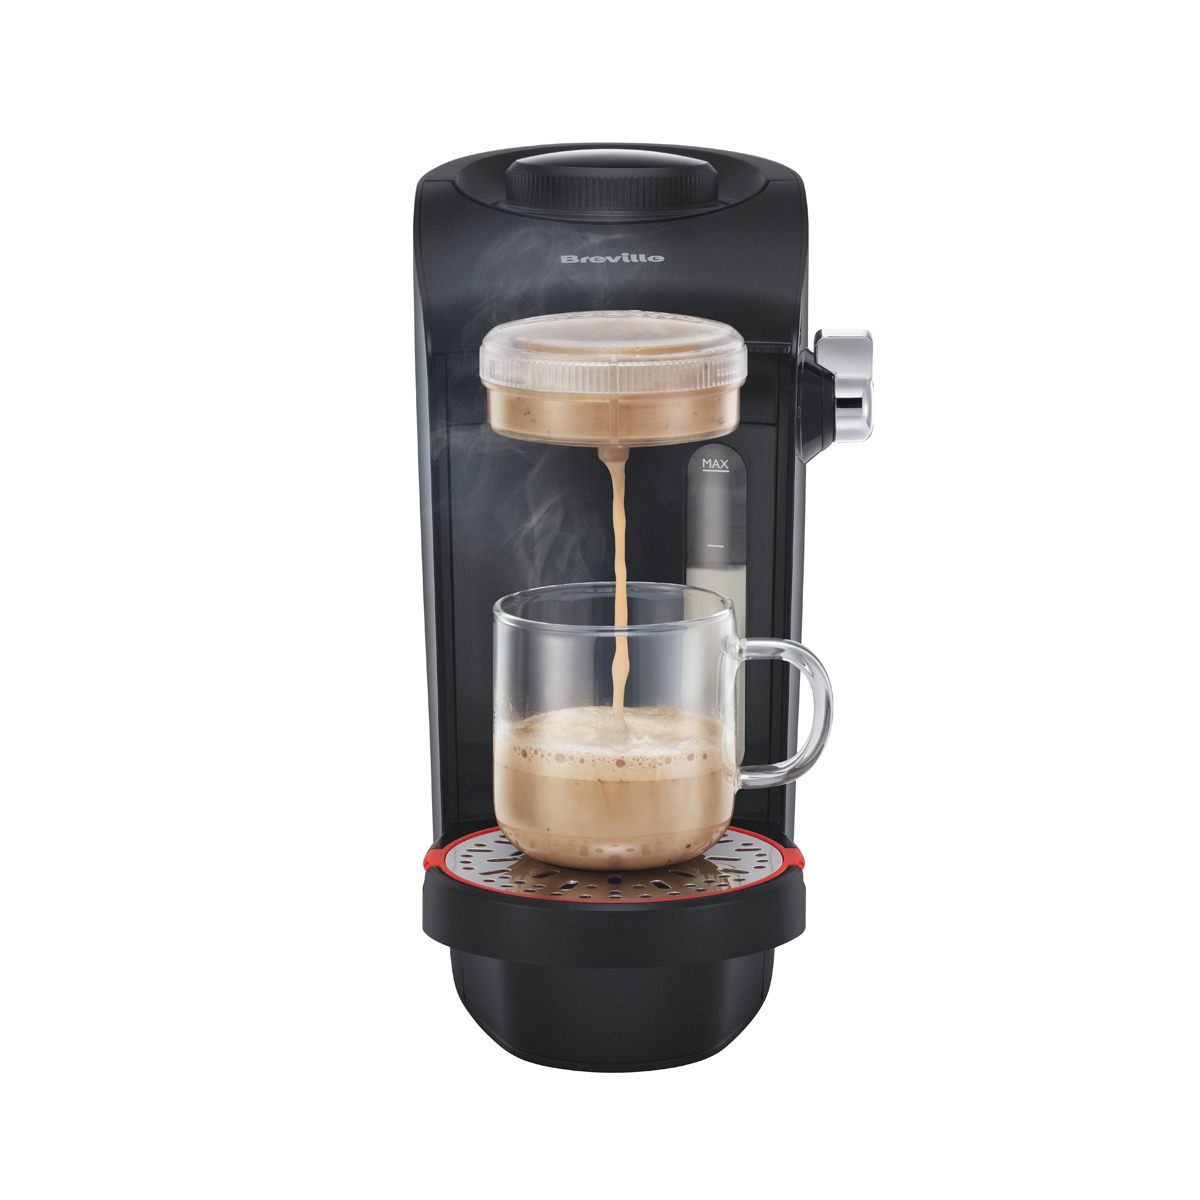 Breville Coffee Maker Parts Manual : Breville Moments Instant Coffee Machine and Hot Drink Maker